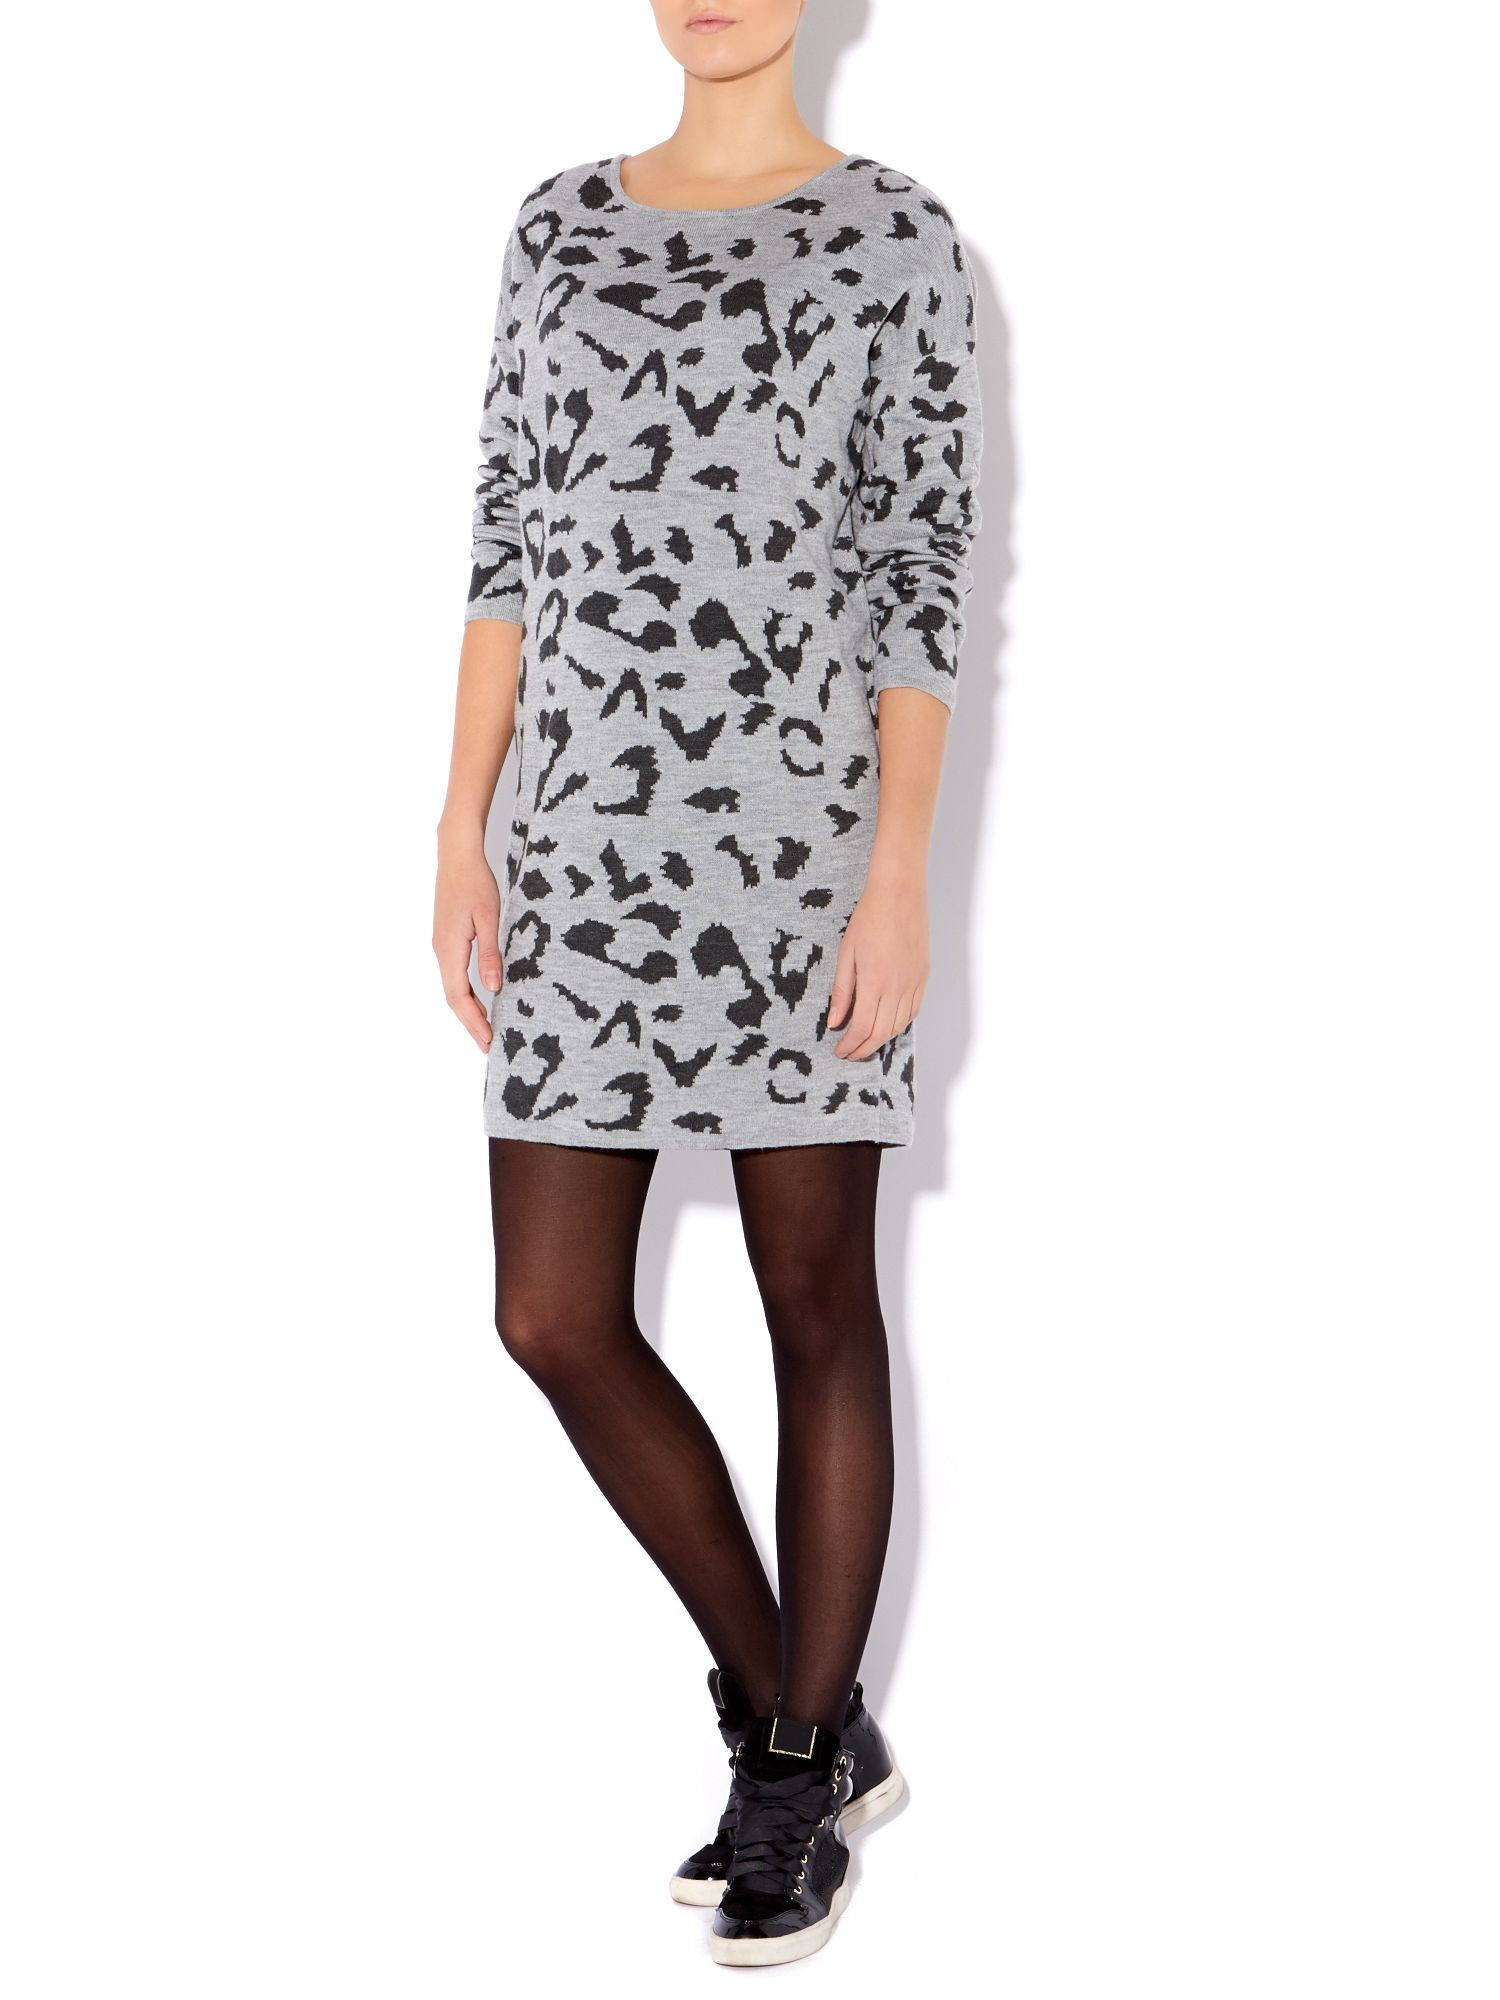 Rosalee long sleeve printed knit dress